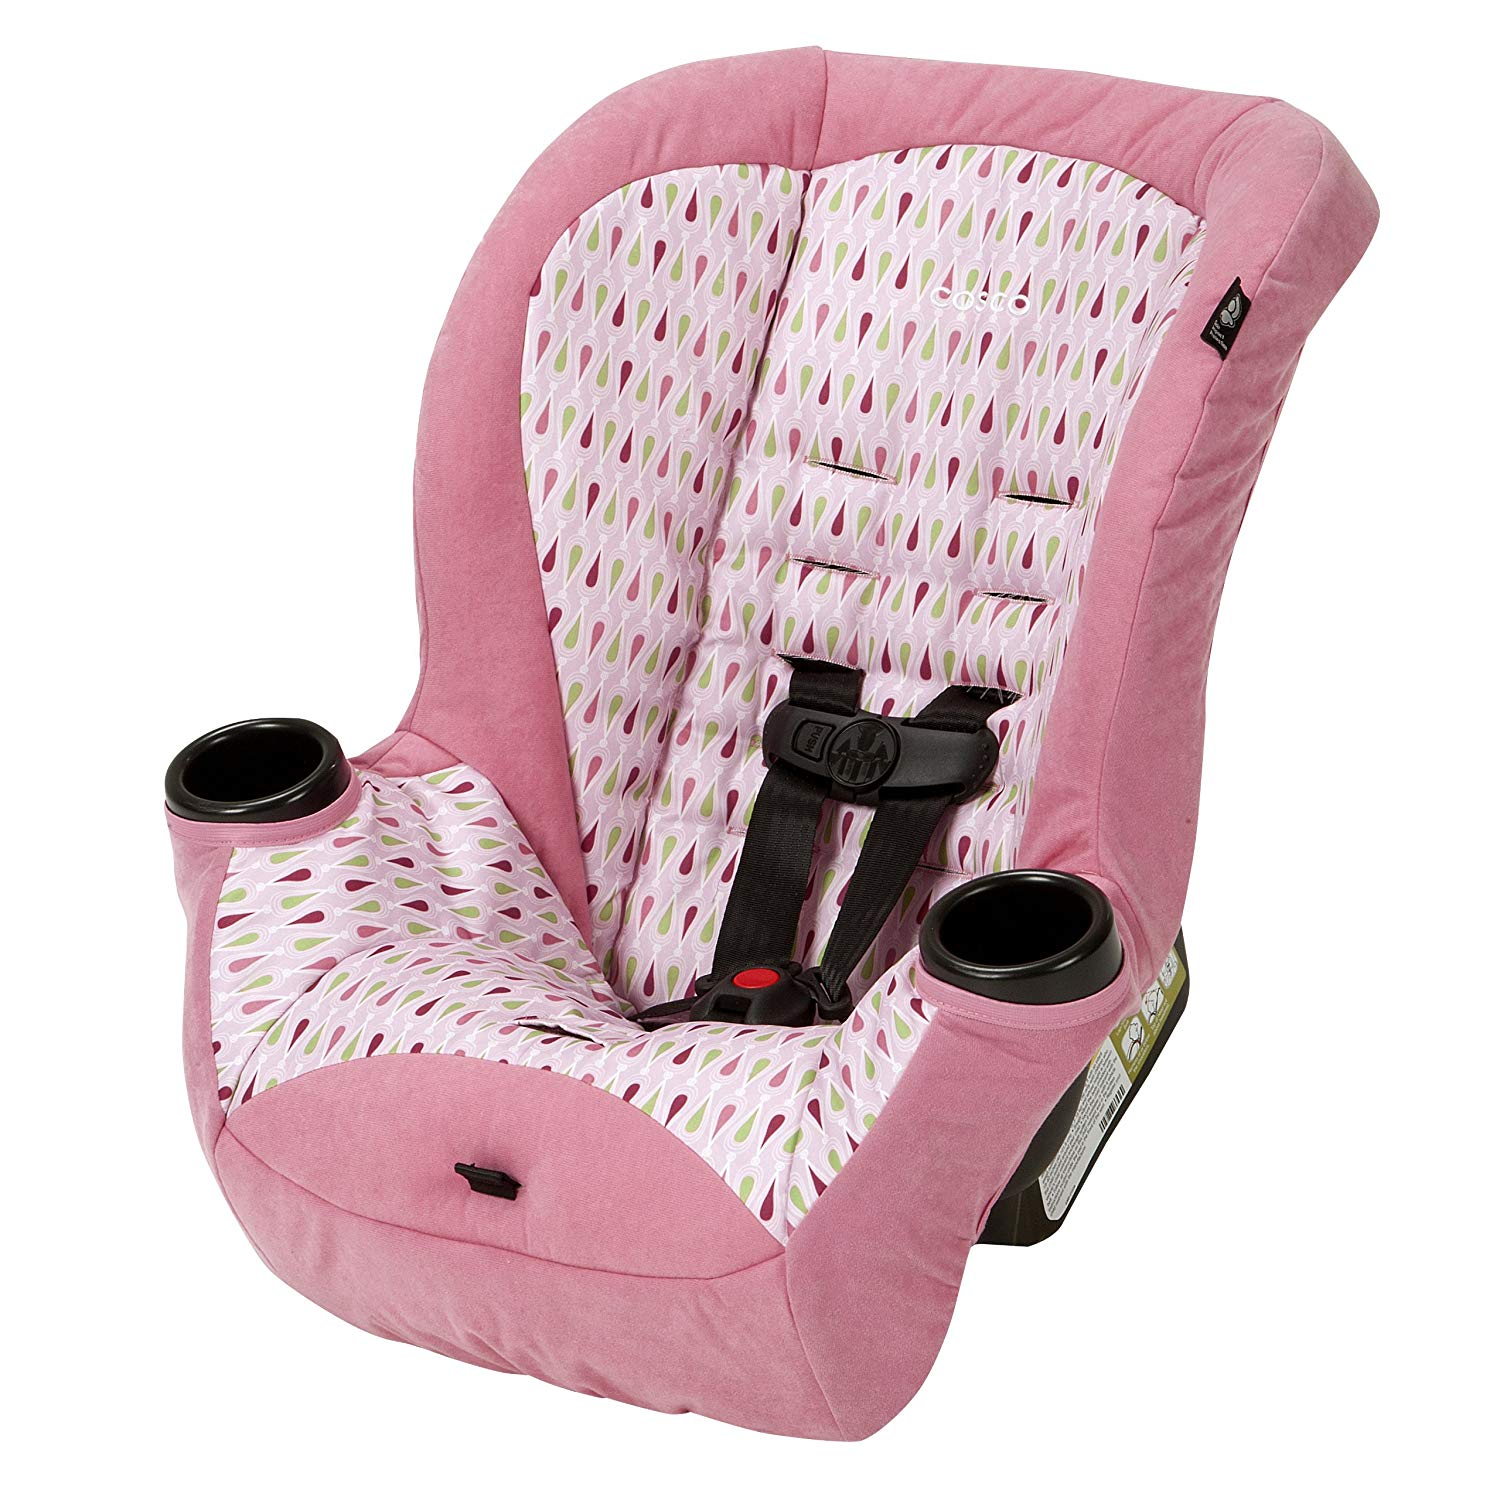 Cosco Apt 40-RF Convertible Rear Facing Car Seat